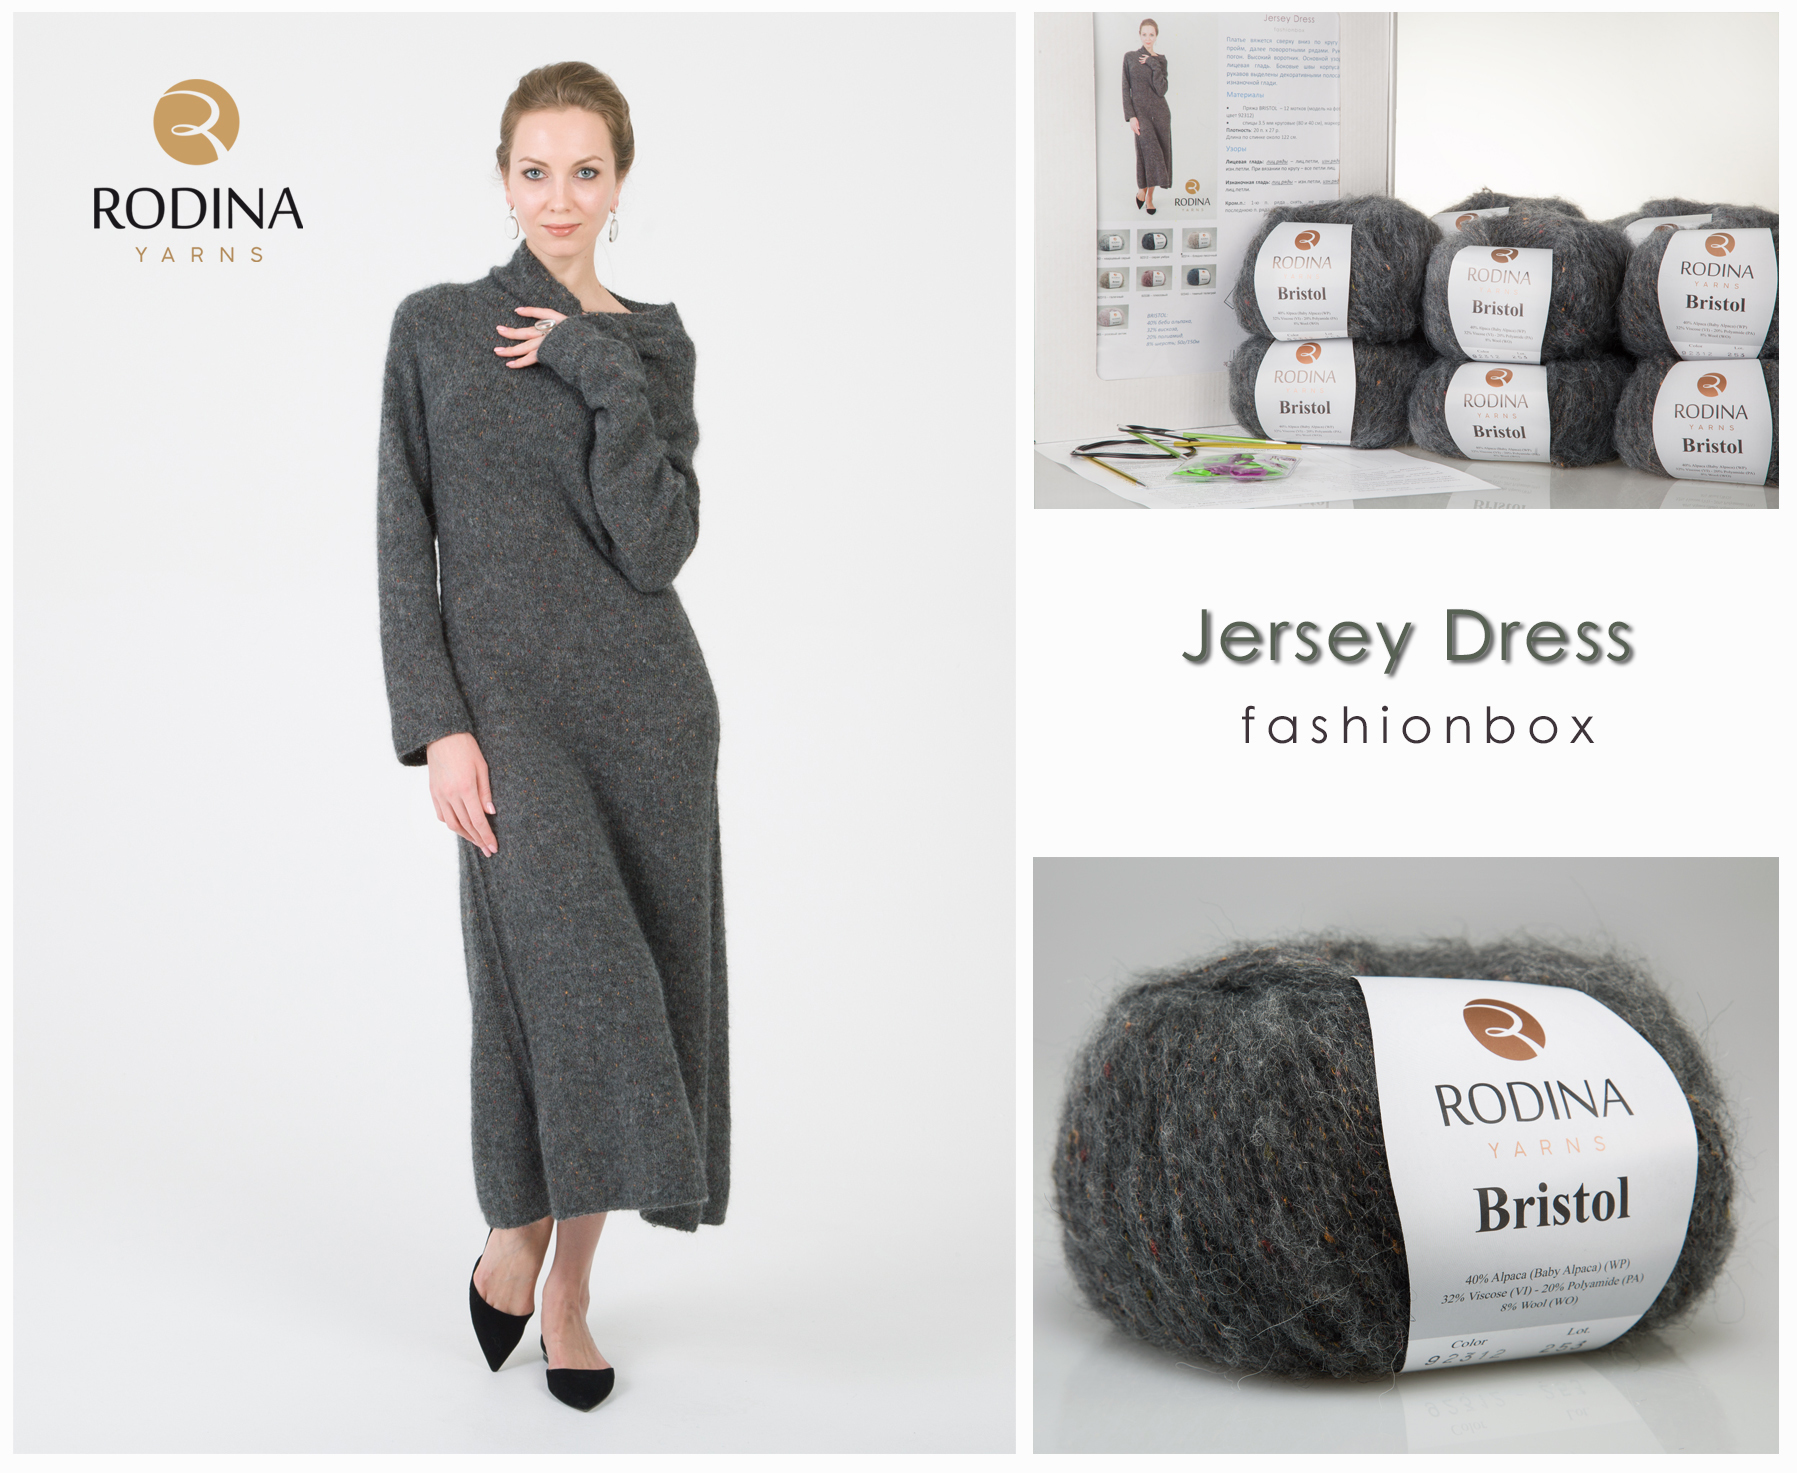 JERSEY DRESS Fashionbox